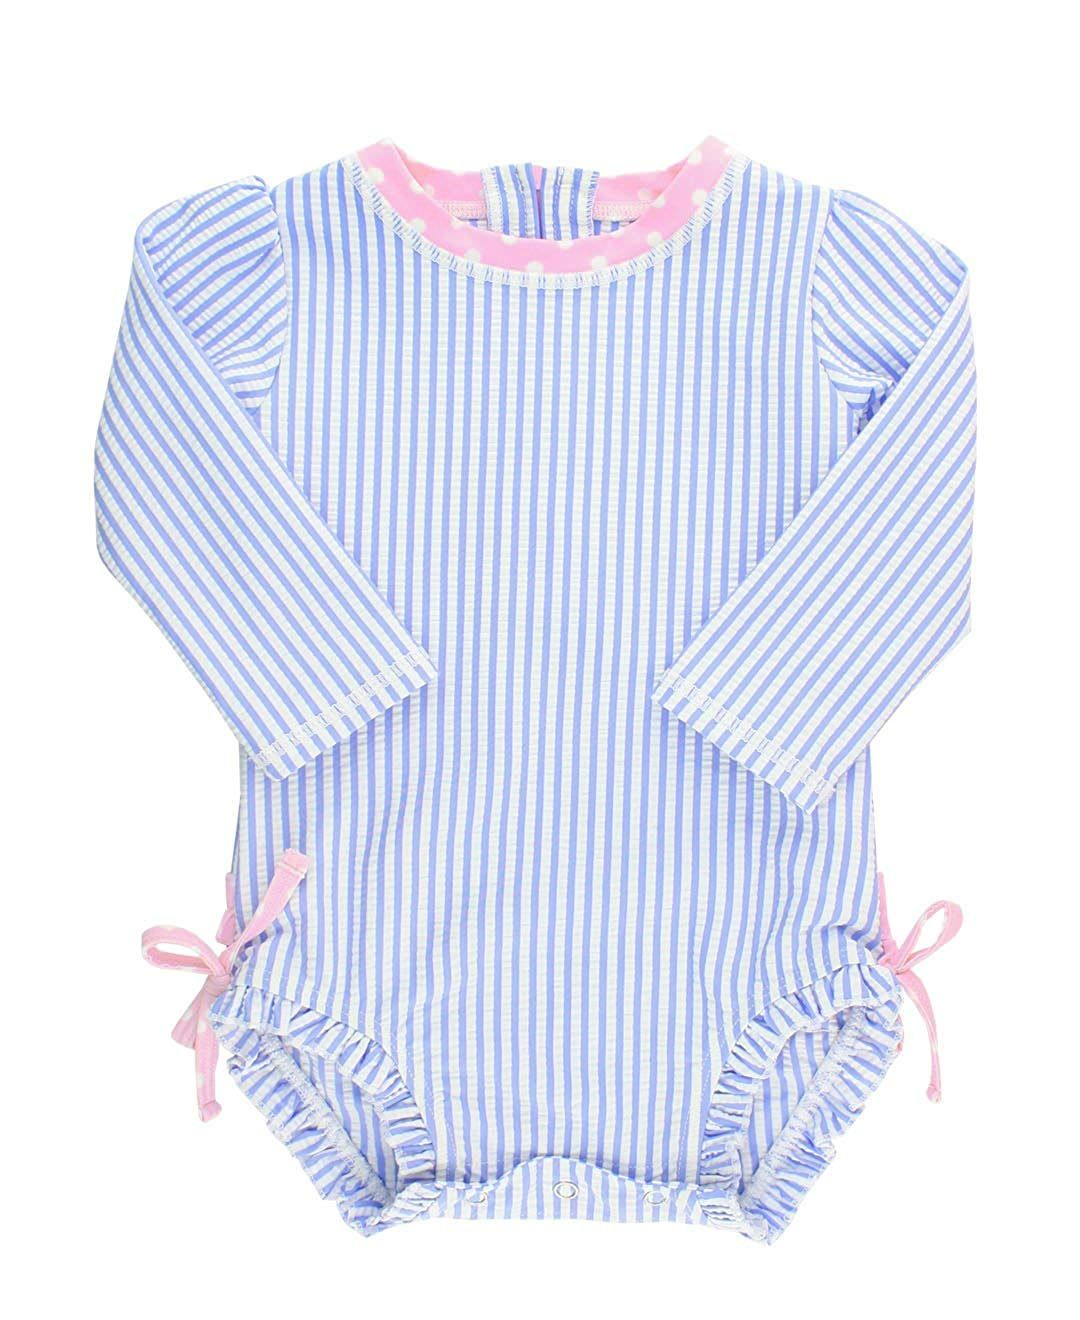 387caabca RuffleButts Baby/Toddler Girls Long Sleeve One Piece Swimsuit with UPF 50+  Sun Protection Price 14,99